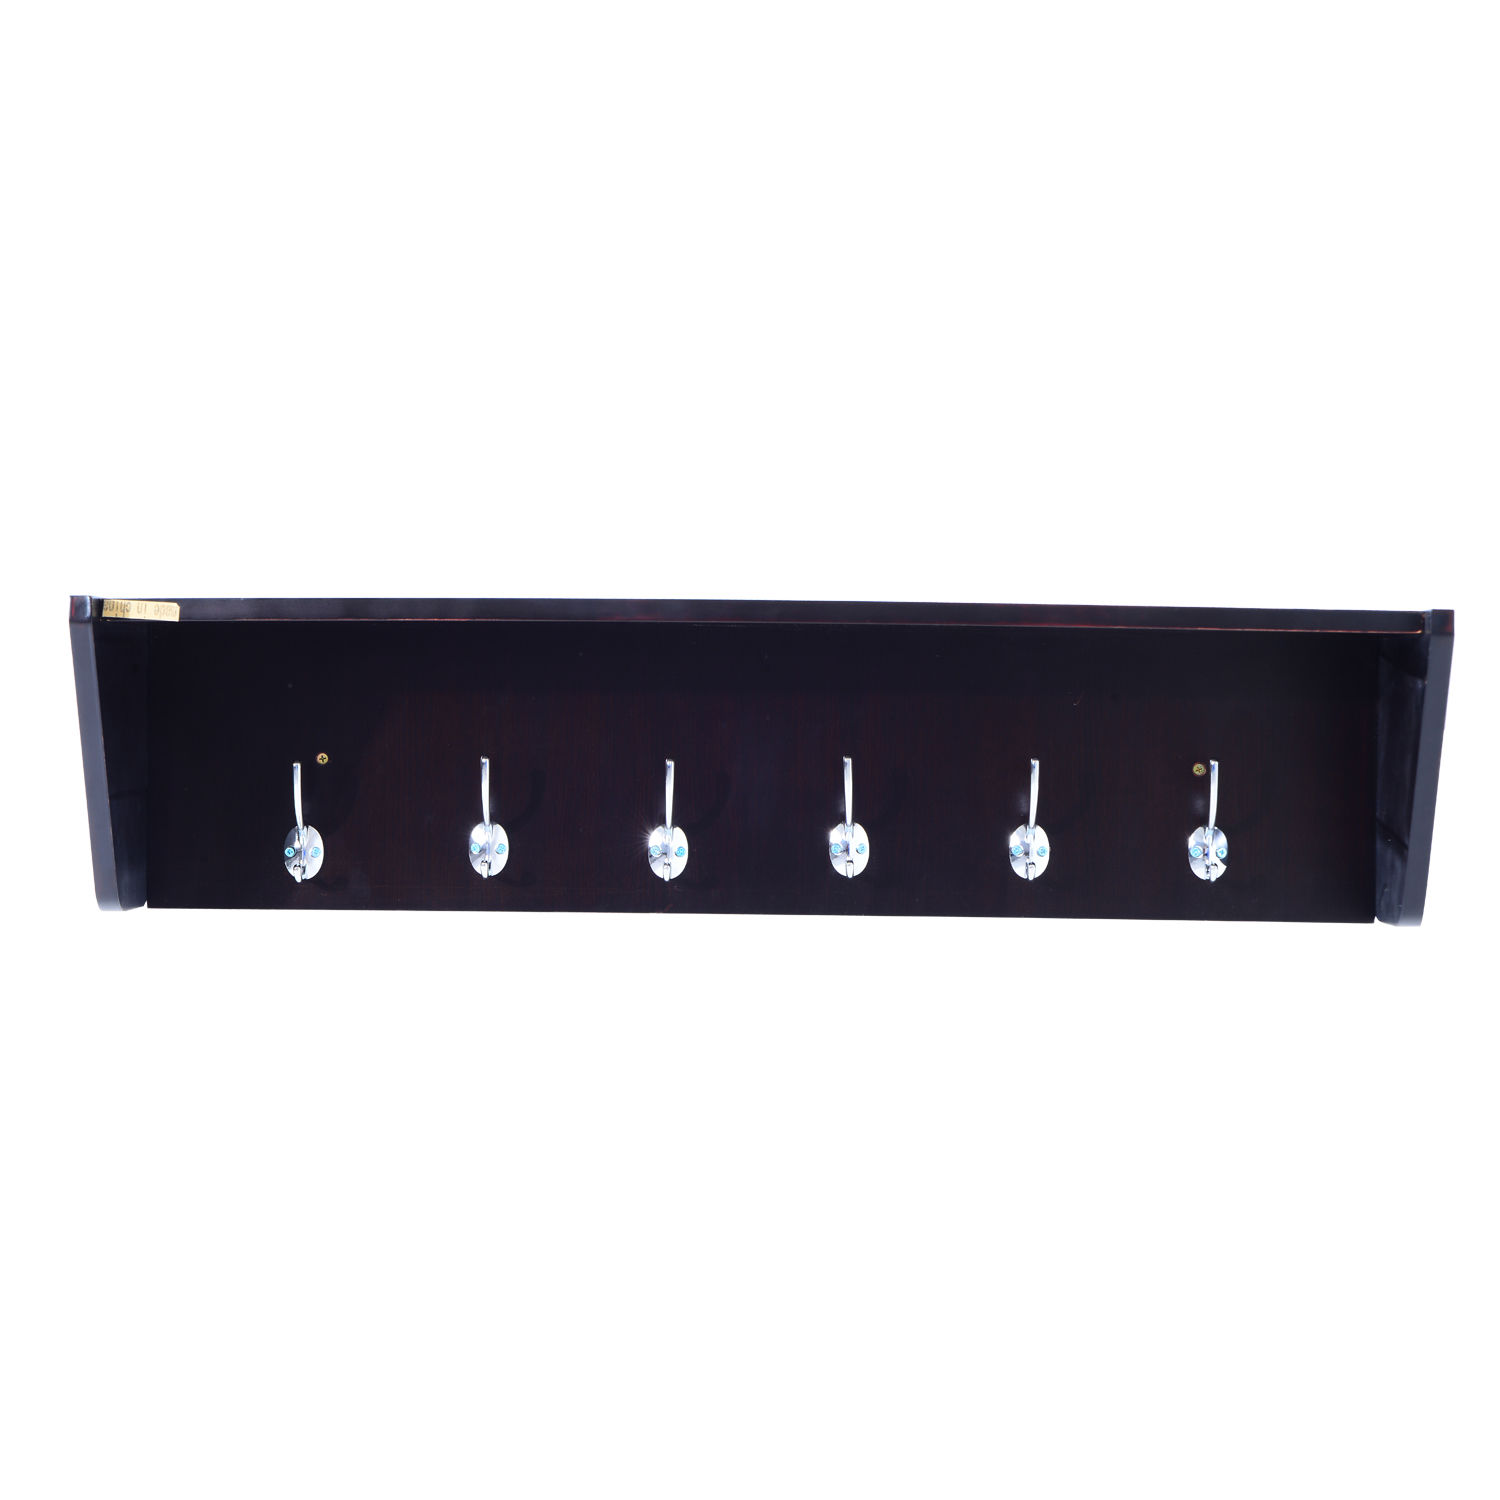 w with mount pin stand shelf shelves console mounted entertainment lcd new led wall tv av